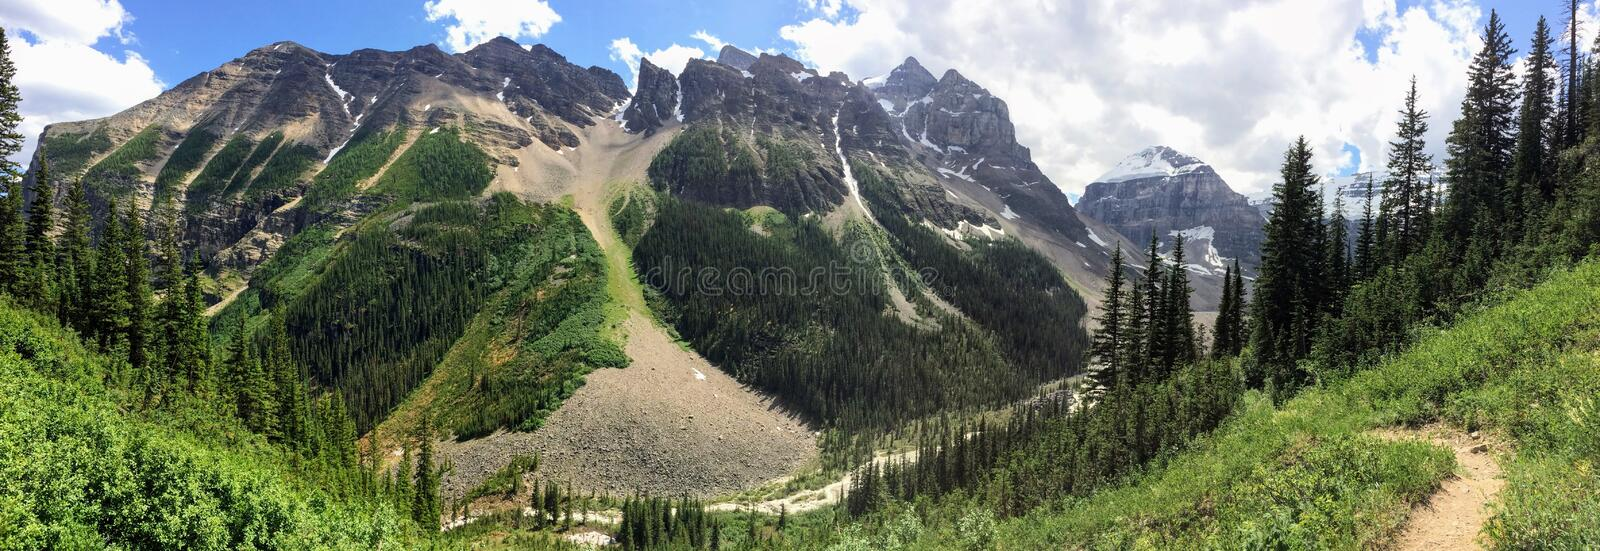 Views hiking around Lake Louise, Lakeview trail, Plain of six glaciers, Lake Agnes, Mirror Lake, Little and Big Beehive, Banff Nat. Ional Park, Canada, Alberta royalty free stock photography